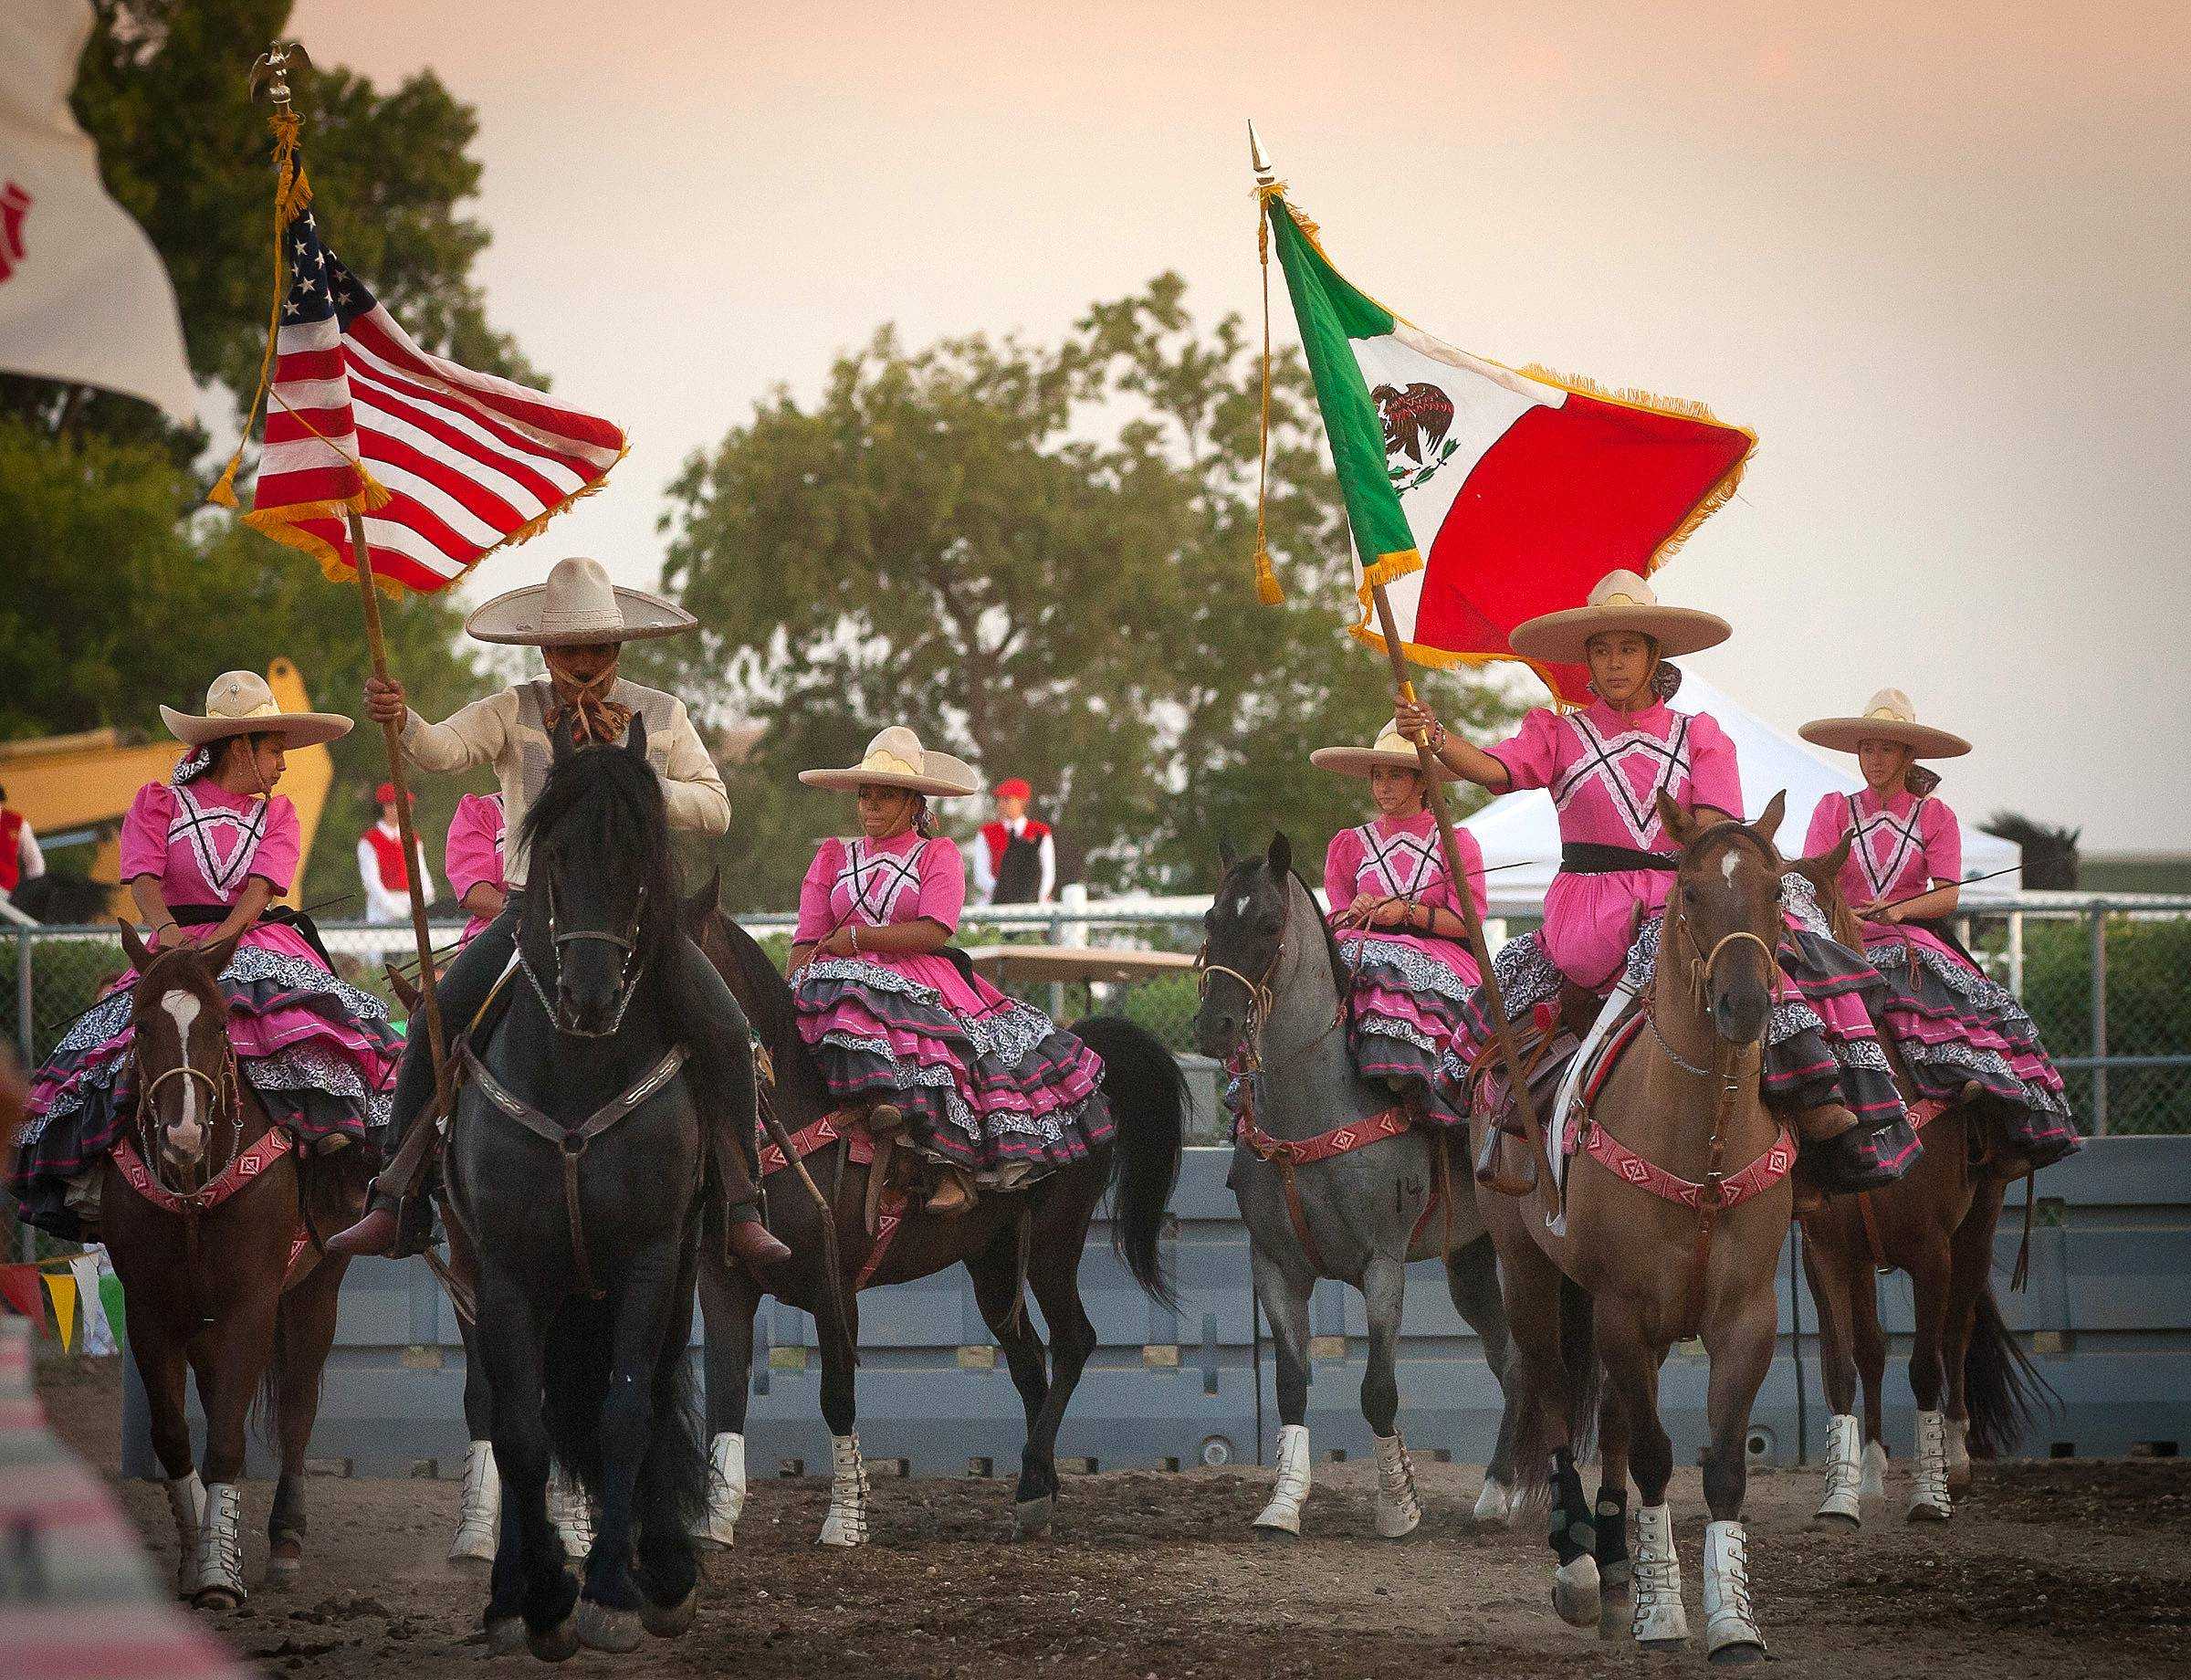 Enjoy the pageantry of the multicultural, multimedia Festival of the Horse and Drum this weekend in St. Charles.